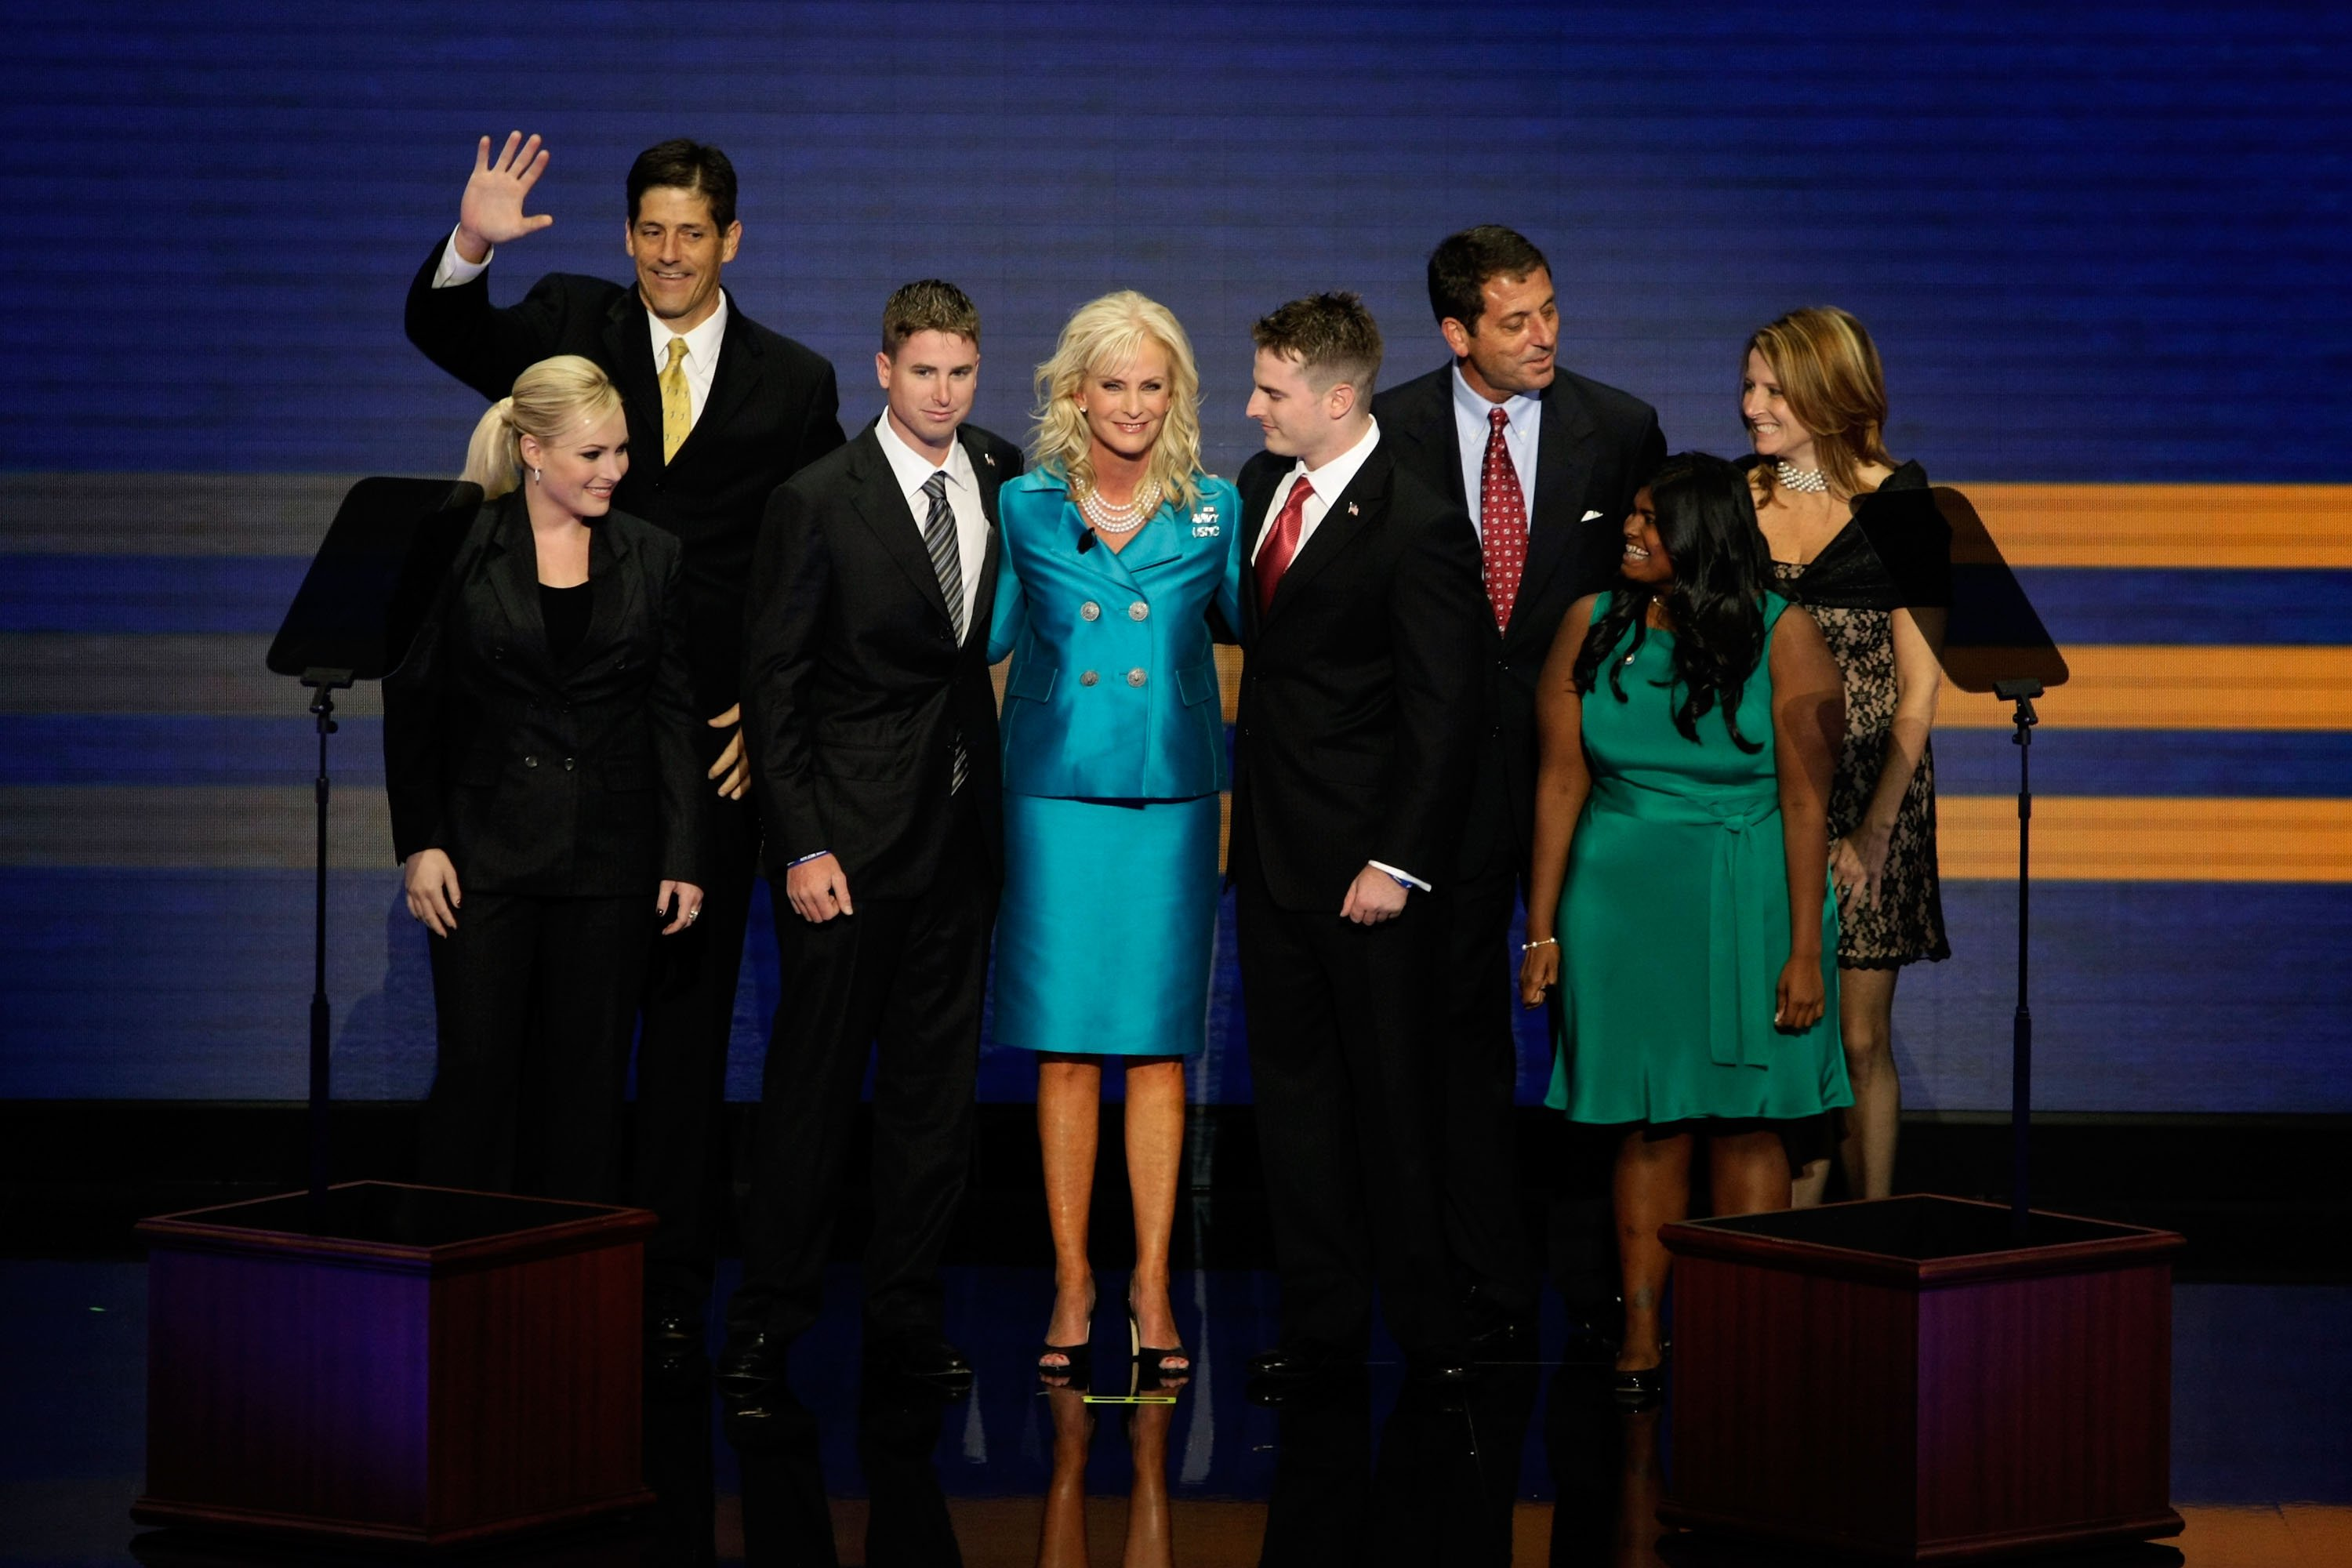 Cindy McCain with her children Meghan, Andy, Jimmy, Jack, Doug, Bridget, and Sidney at the Republican National Convention on September 4, 2008 | Photo: GettyImages